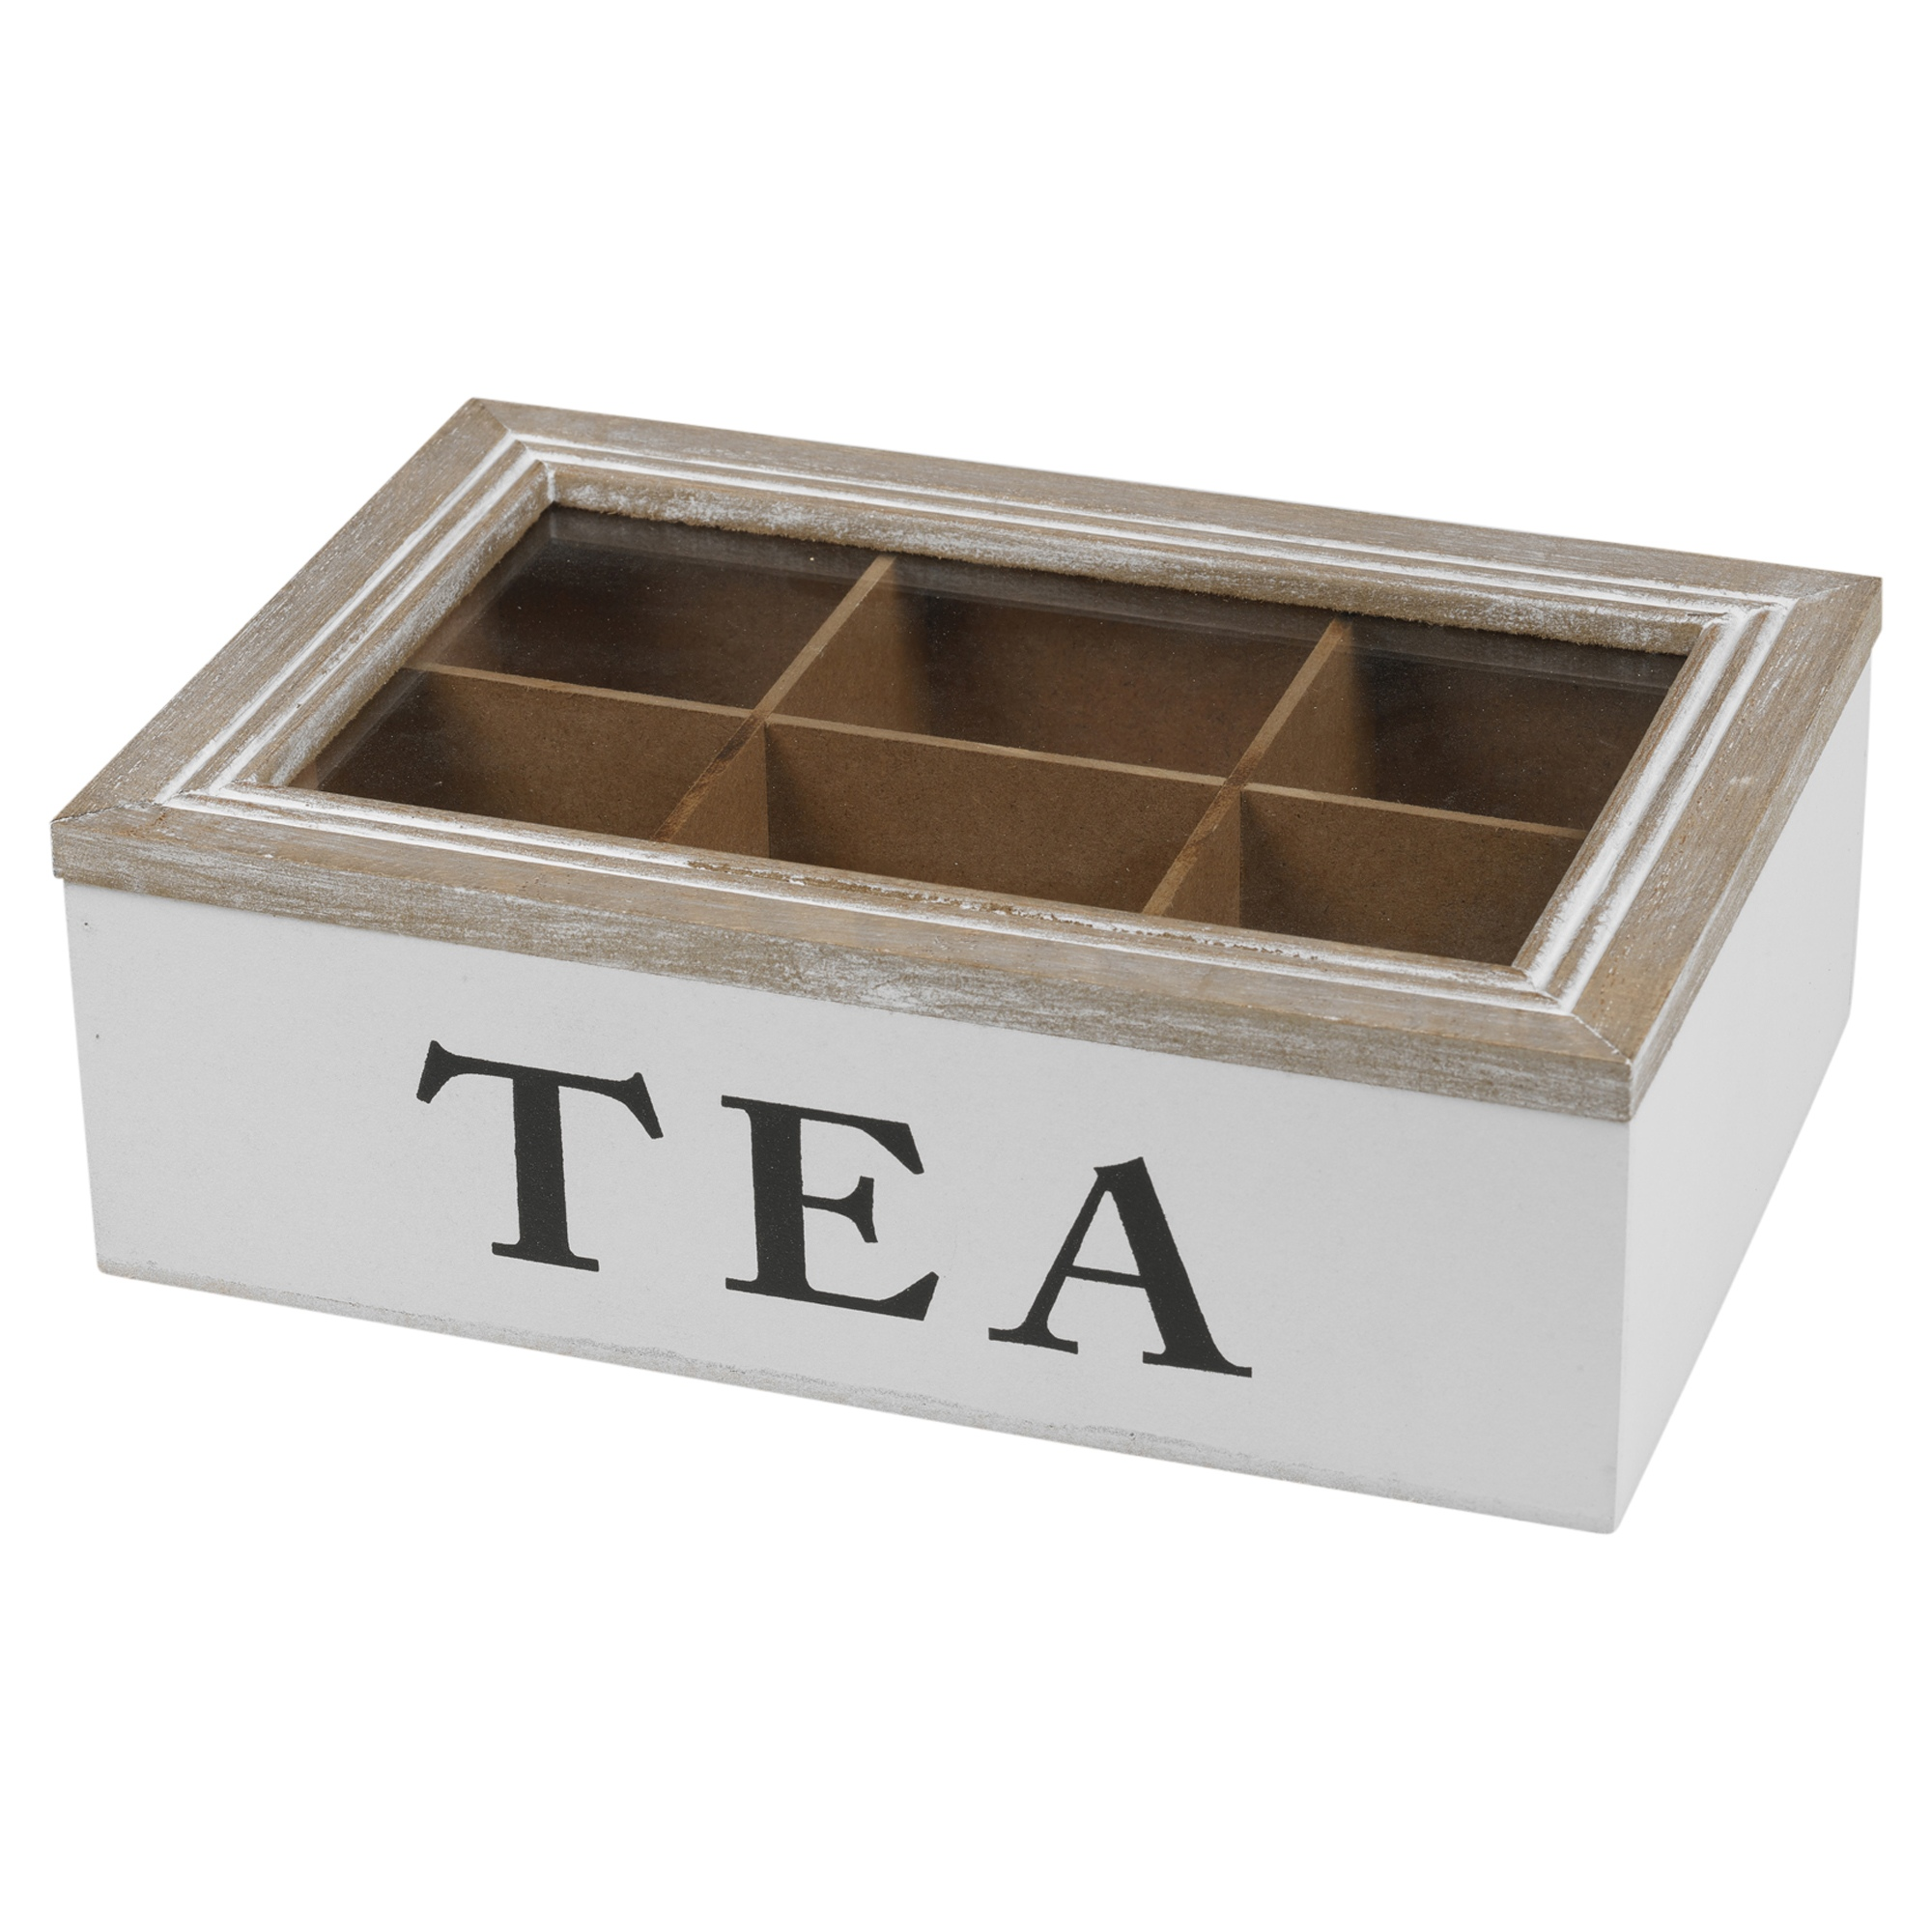 6 section wooden tea box glass hinged lid kitchen storage